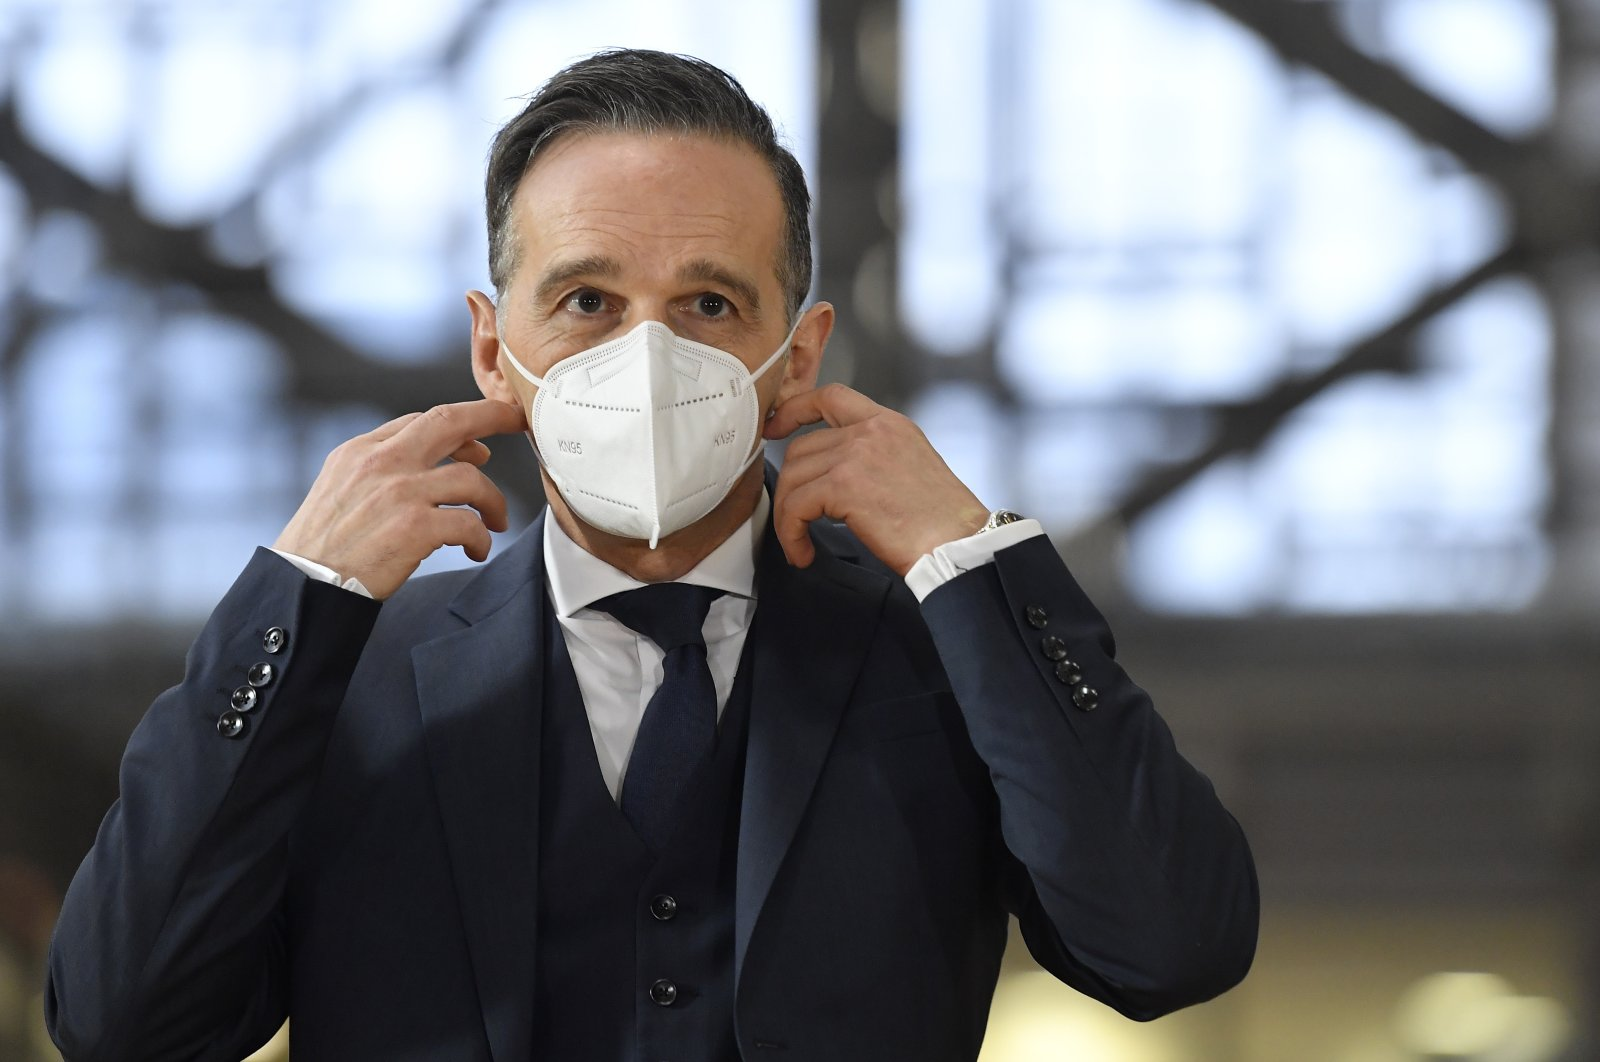 German Foreign Minister Heiko Maas takes off his protective mask as he arrives for a meeting of EU Foreign Ministers at the European Council building in Brussels, Belgium, Dec. 7, 2020. (AP Photo)